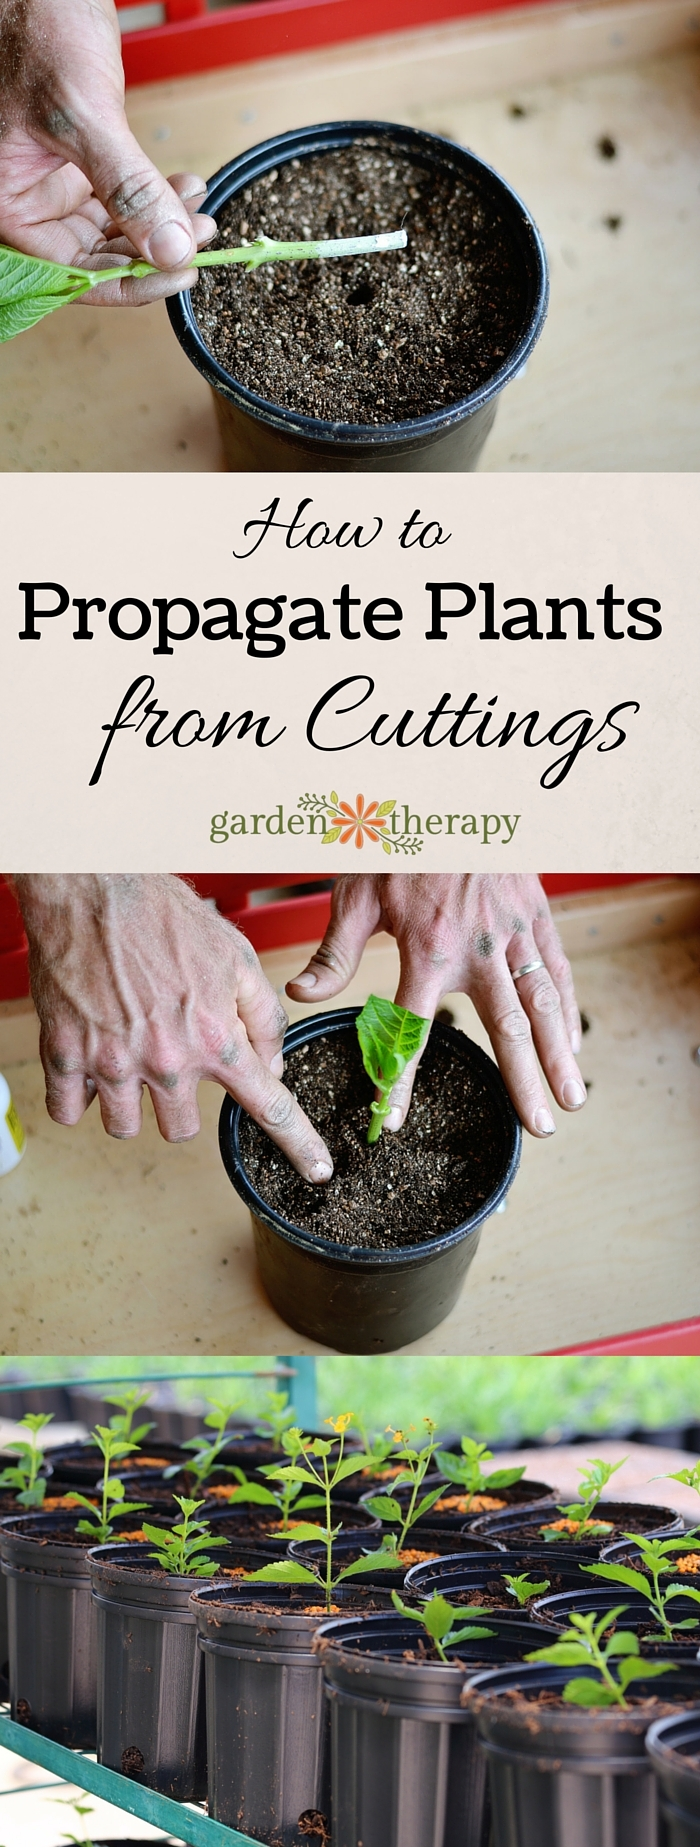 How to Propagate Plants from Cuttings